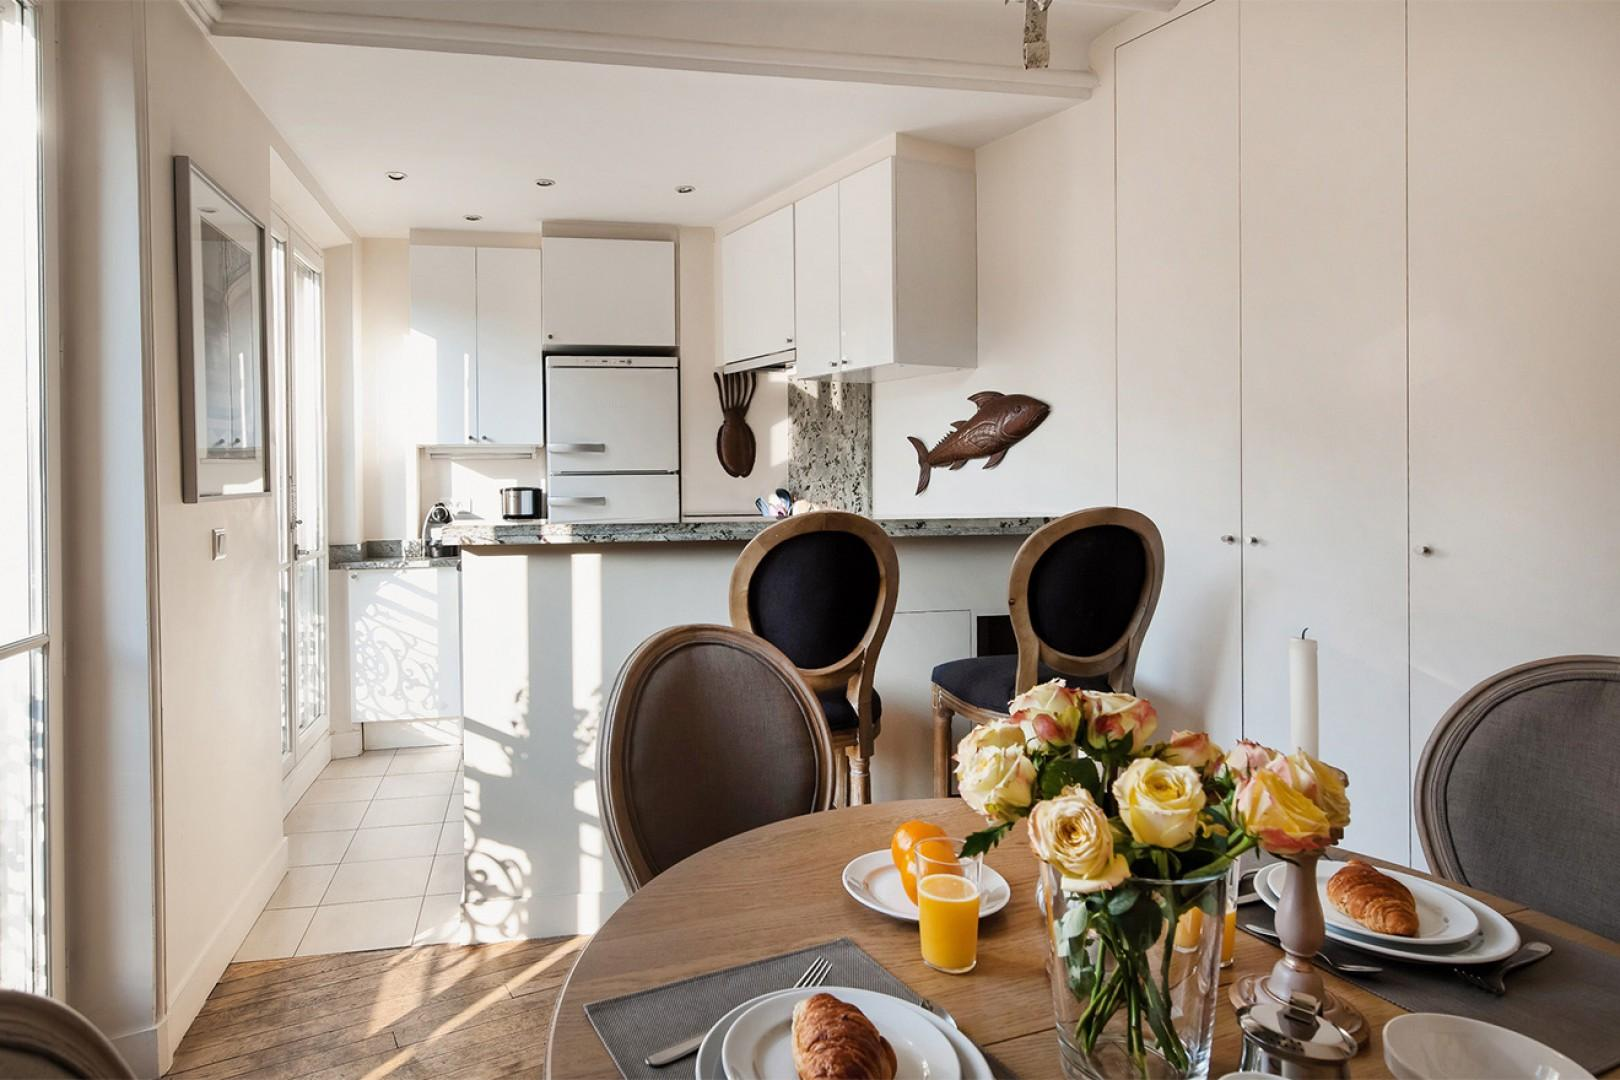 Meals are easy to prepare in the open-plan the kitchen and dining area.